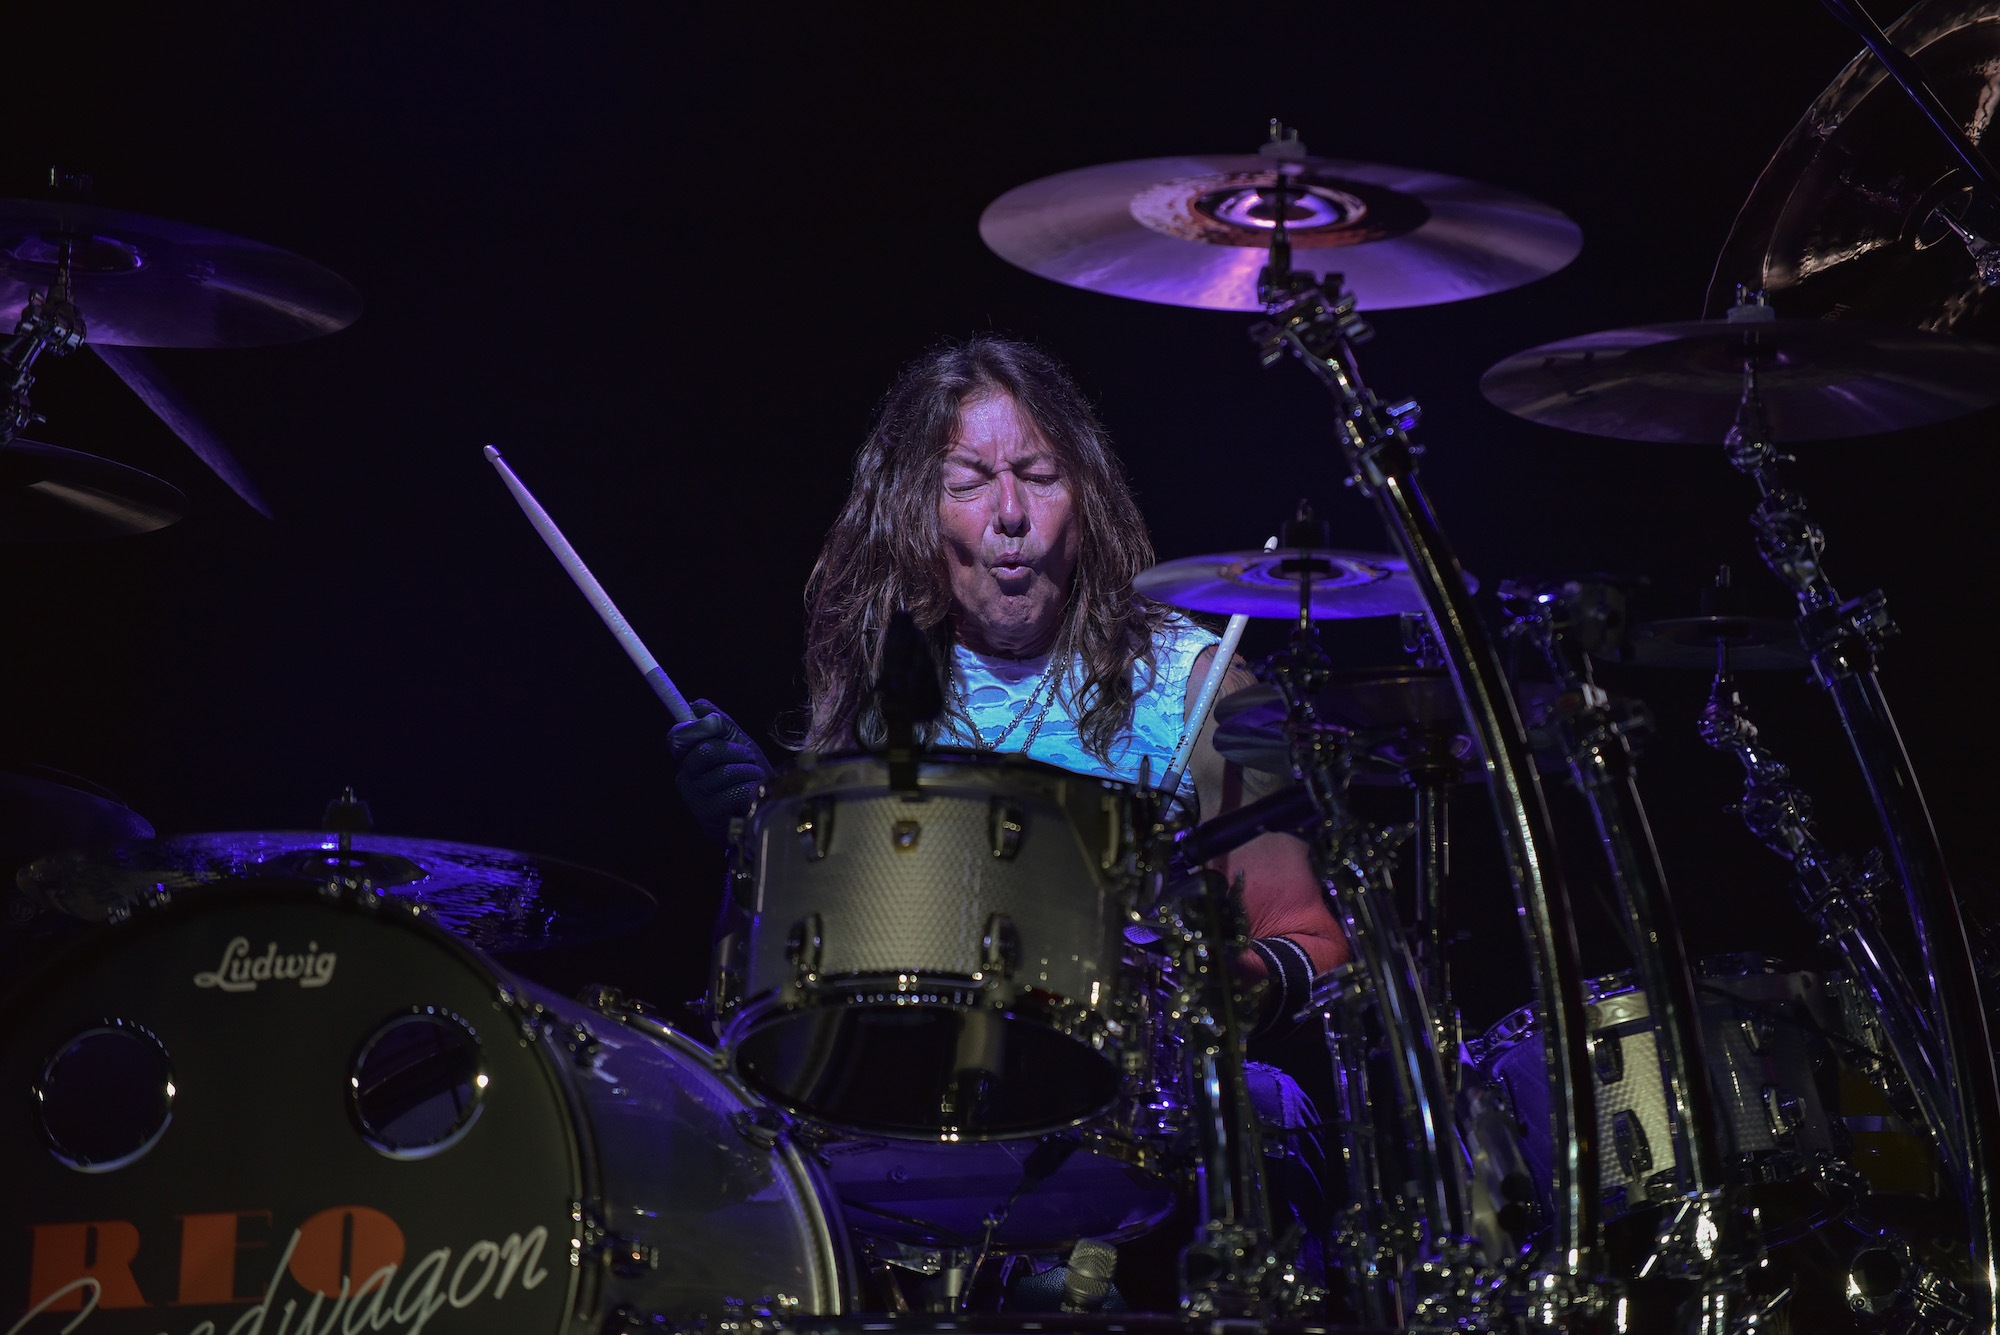 REO Speedwagon Live at RiverEdge Park [GALLERY] 9